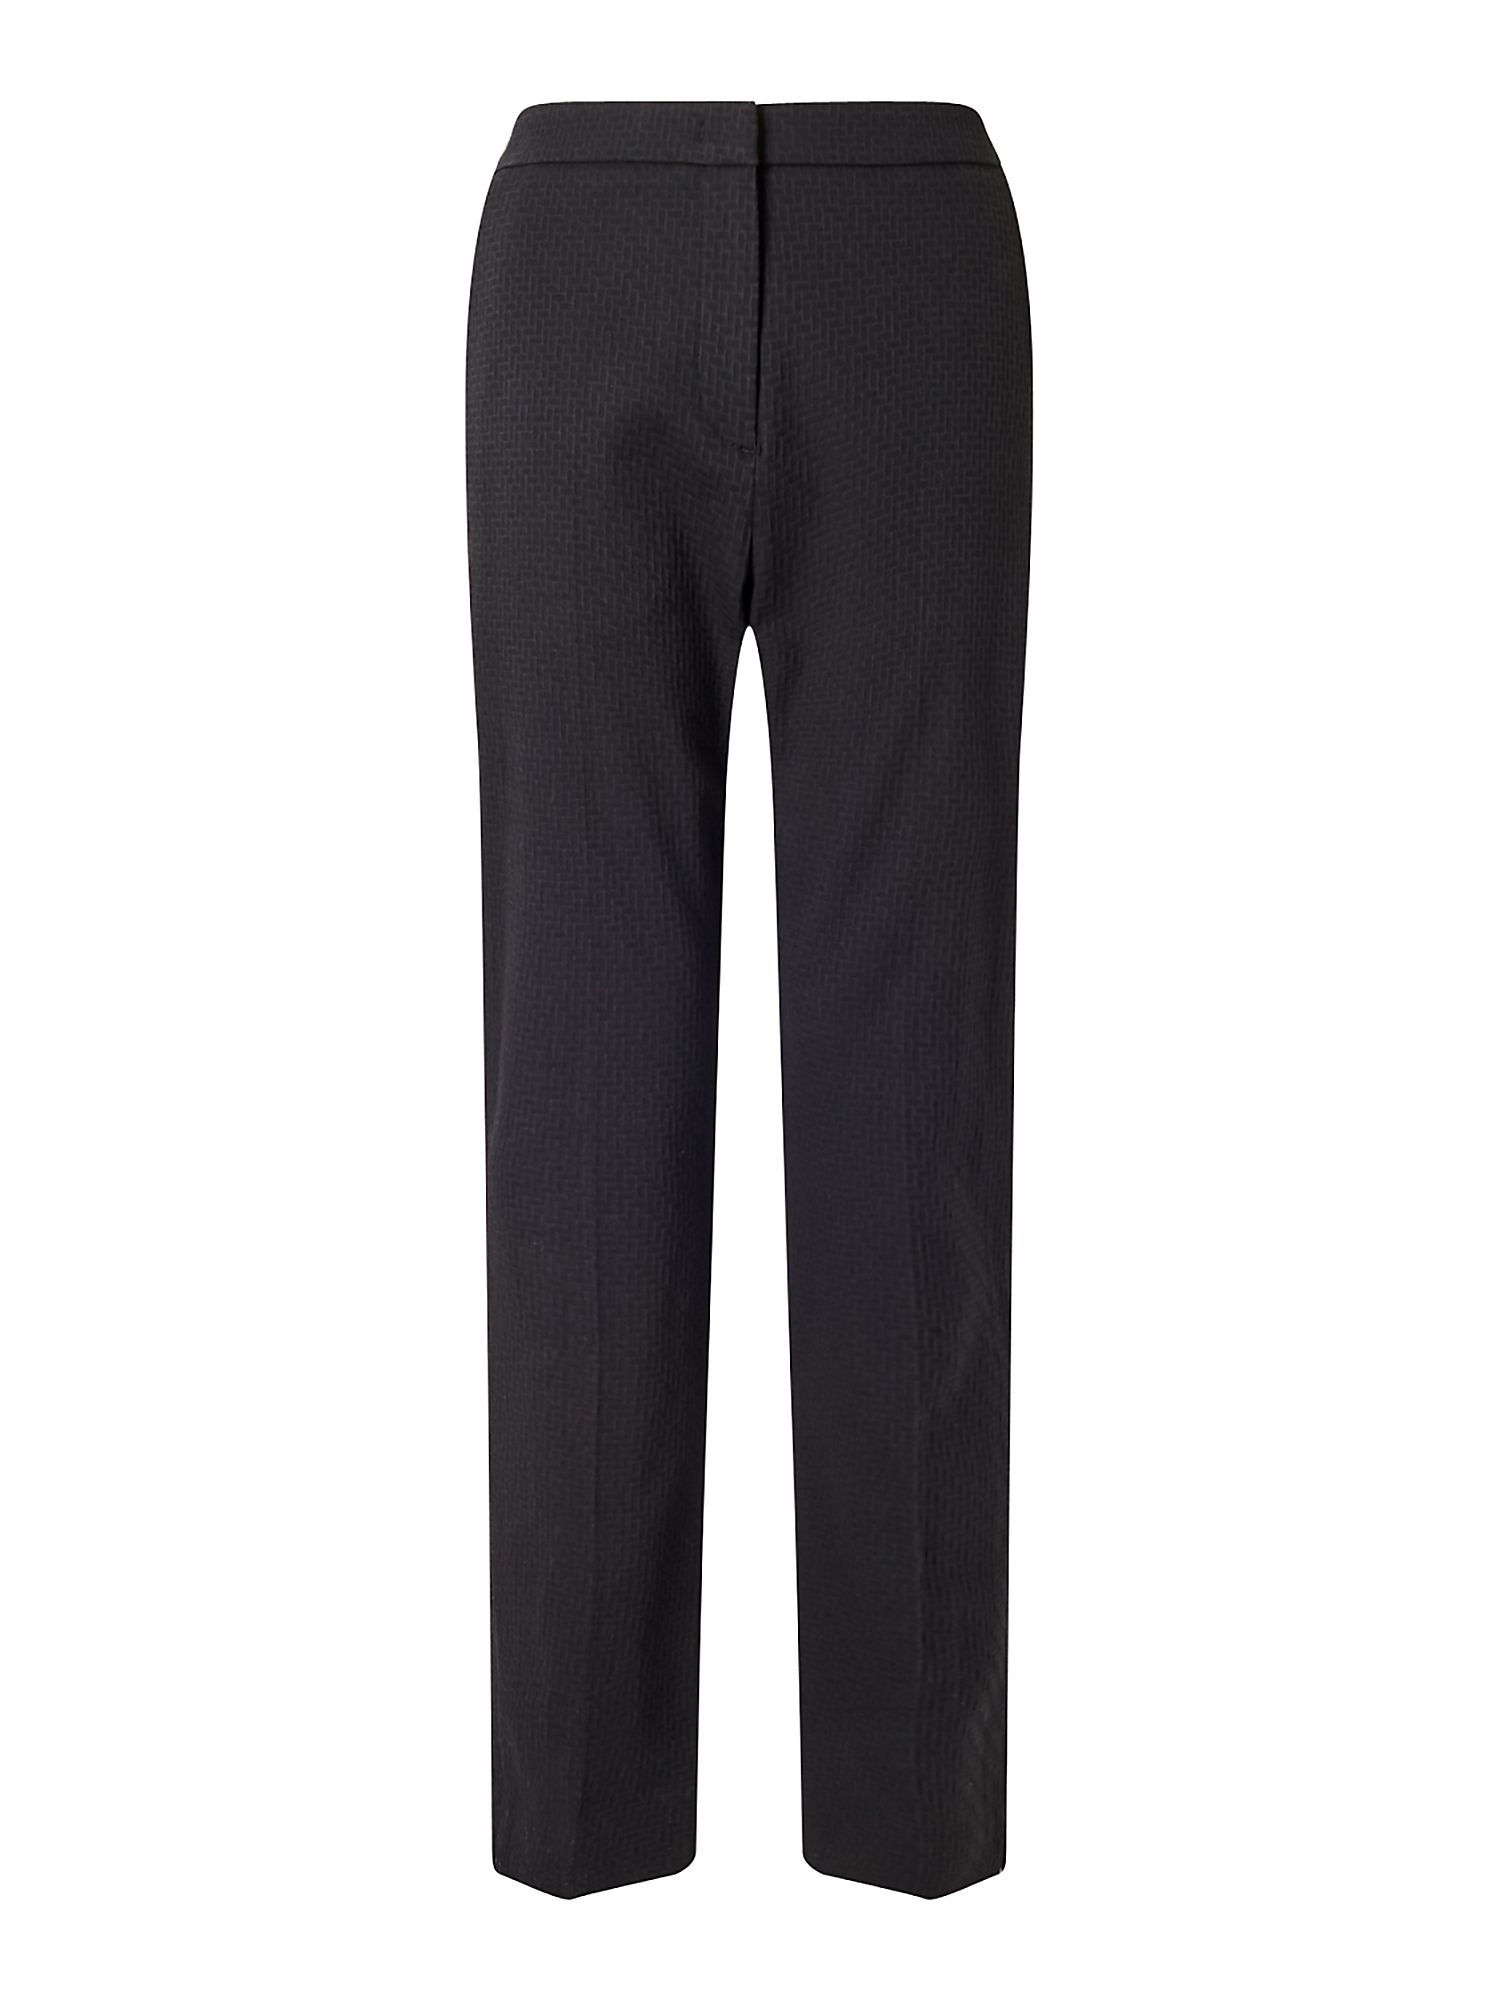 Jigsaw Weave Jacquard Trouser, Black